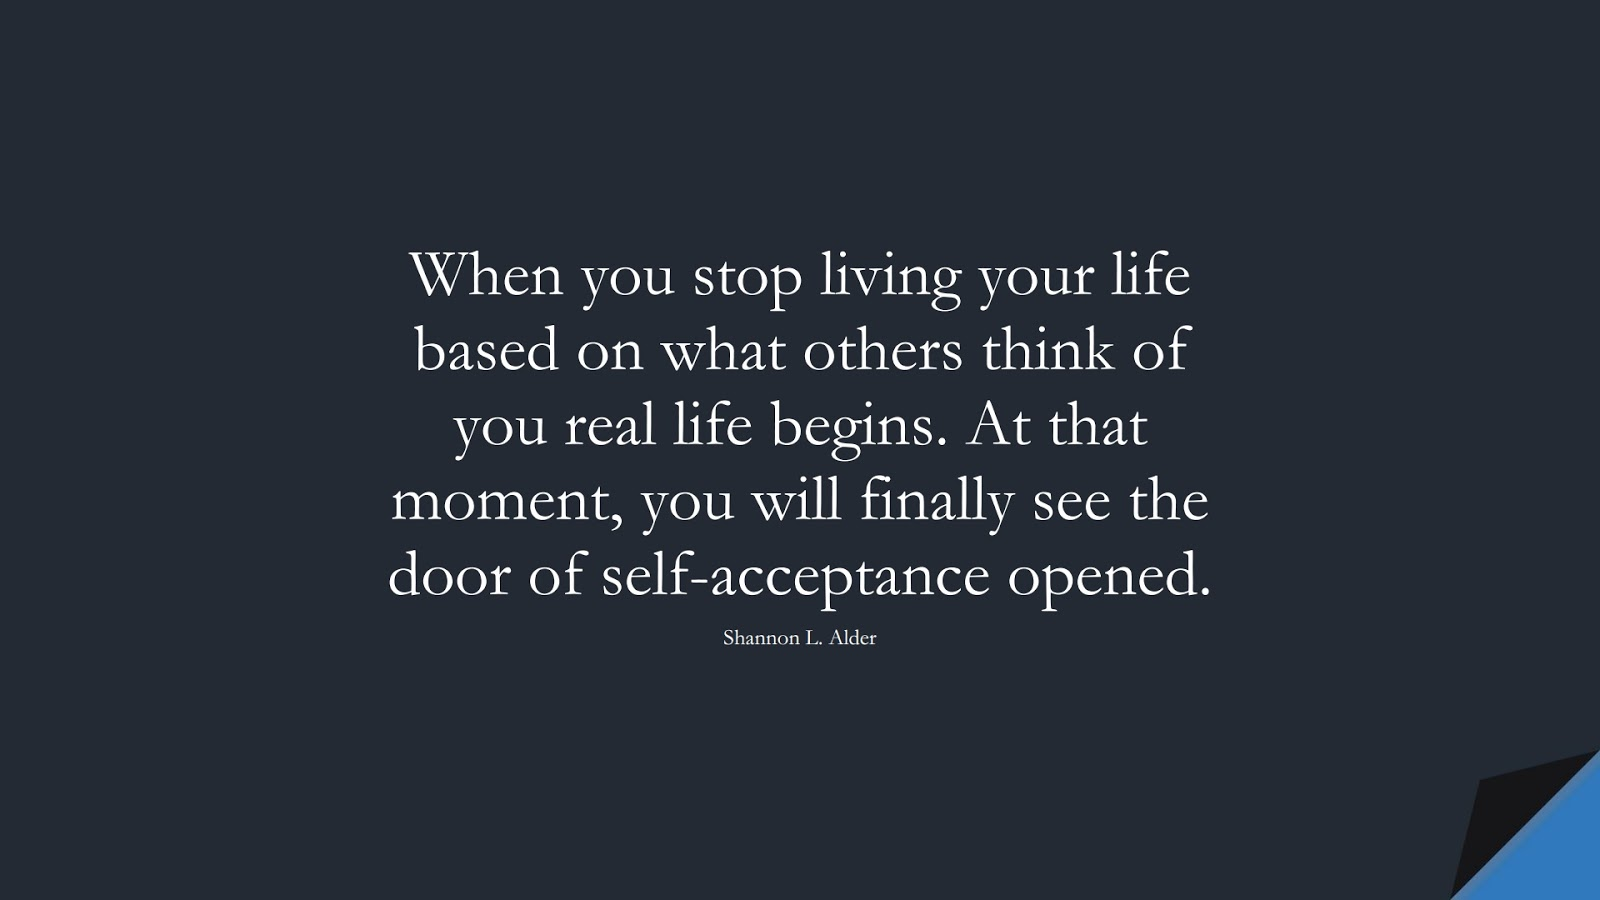 When you stop living your life based on what others think of you real life begins. At that moment, you will finally see the door of self-acceptance opened. (Shannon L. Alder);  #SelfEsteemQuotes